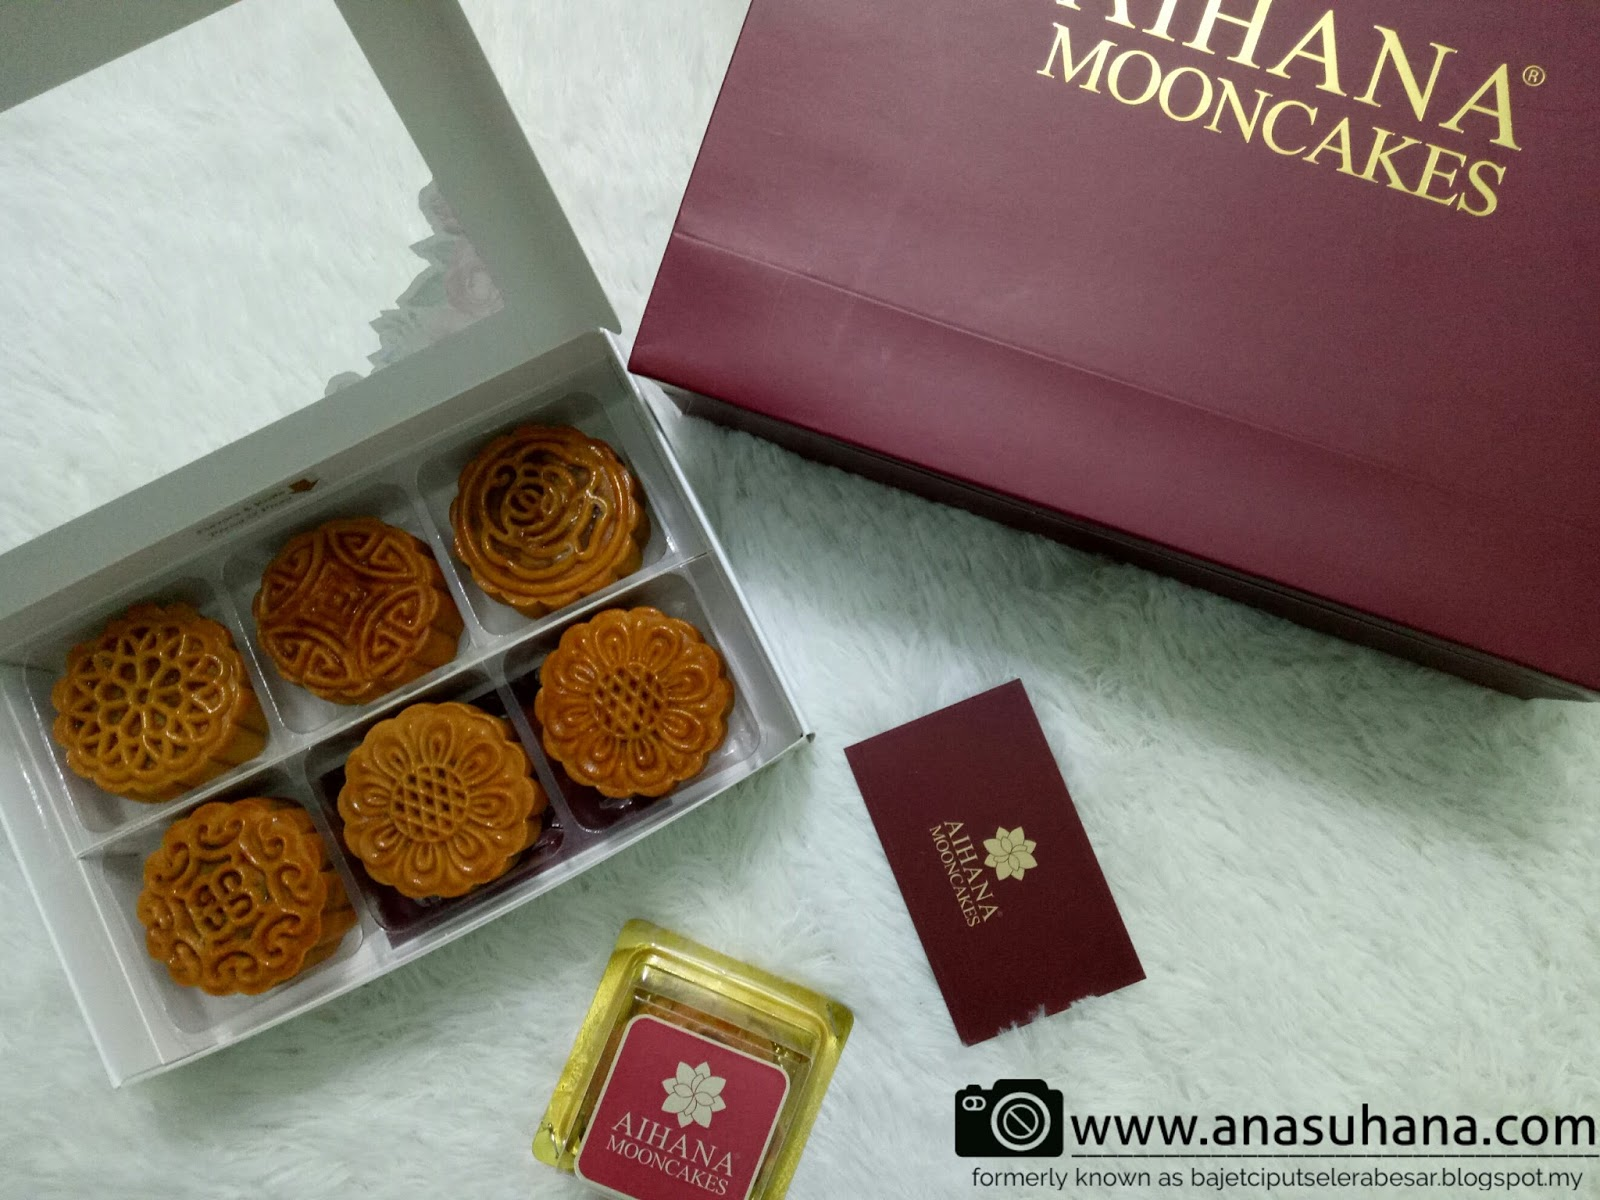 Halal Premium Homemade Mooncake by Aihana Mooncakes